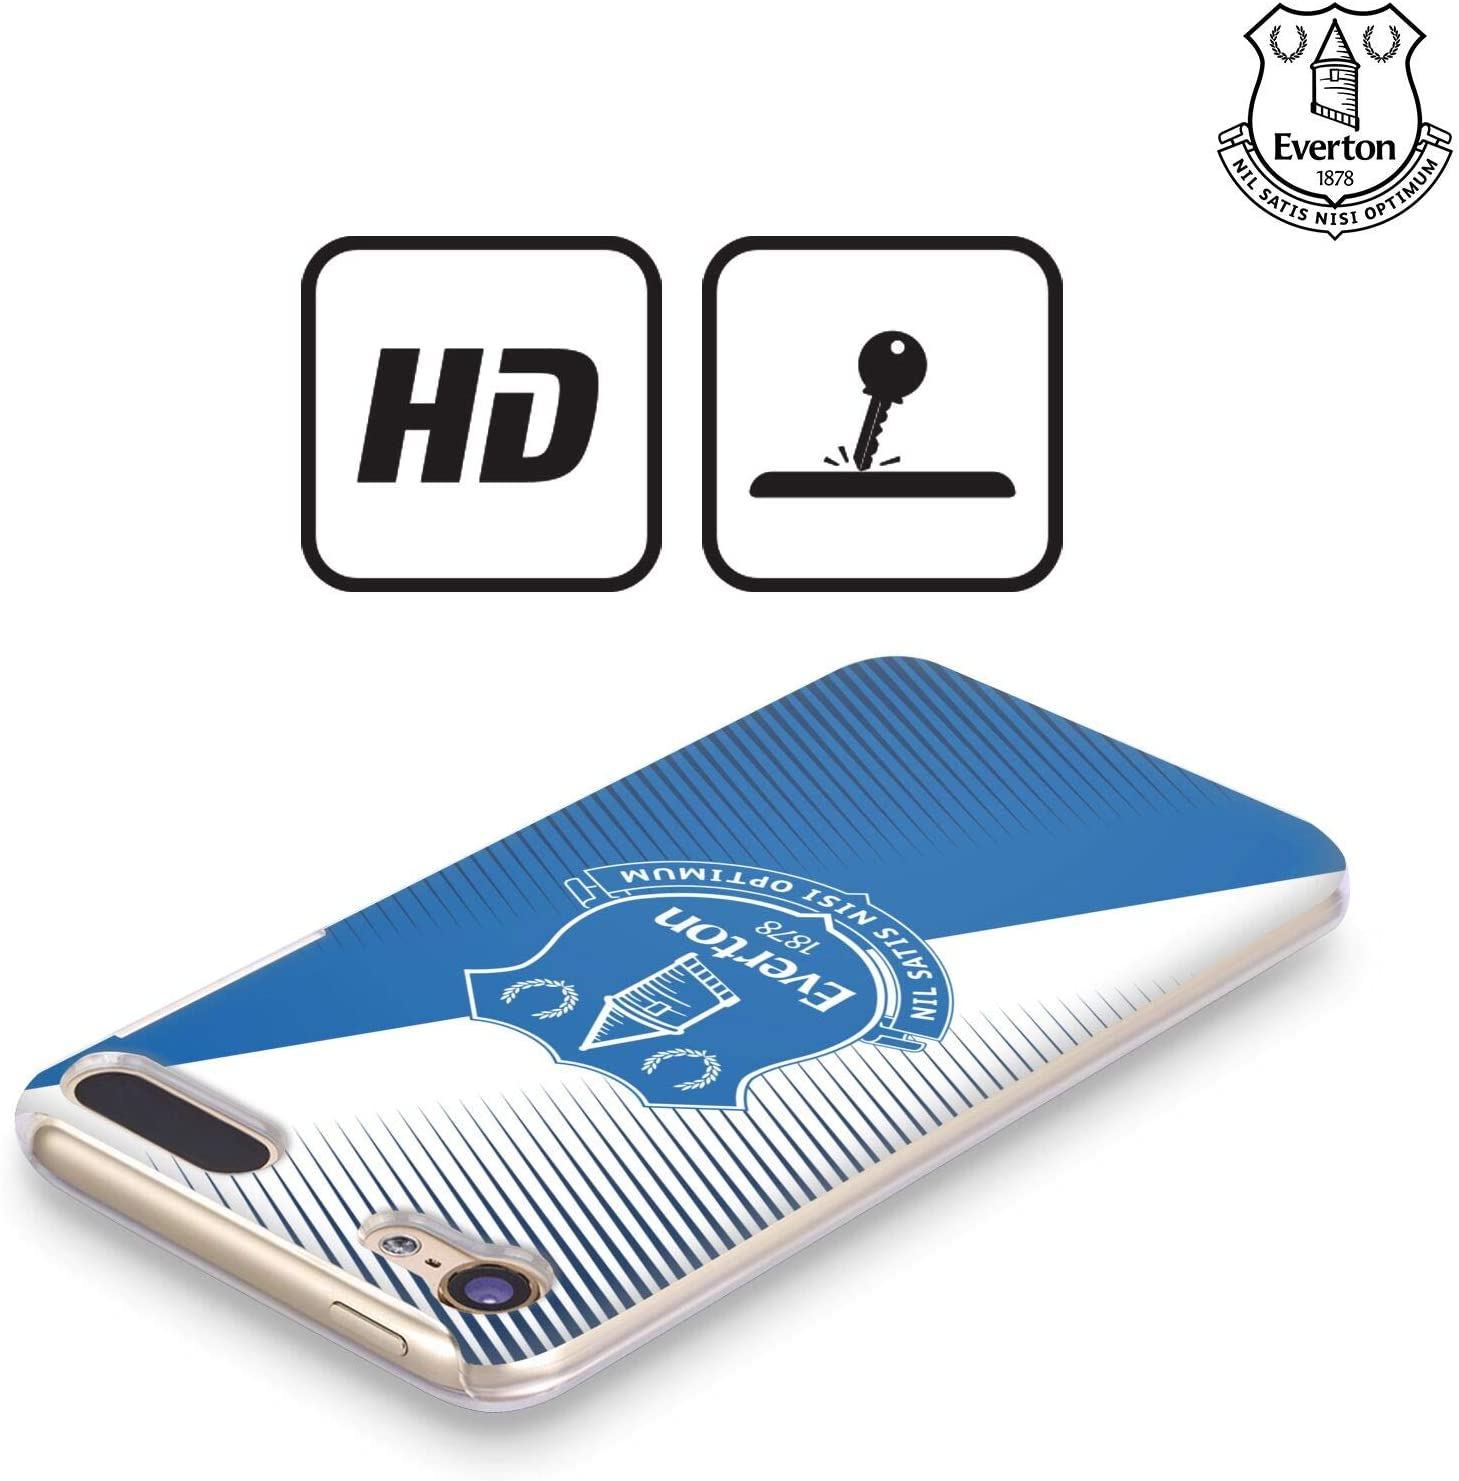 Official Everton Football Club Plain Blue 2019//20 CREST Hard Back Case Compatible for Apple iPod Touch 5G 5th Gen